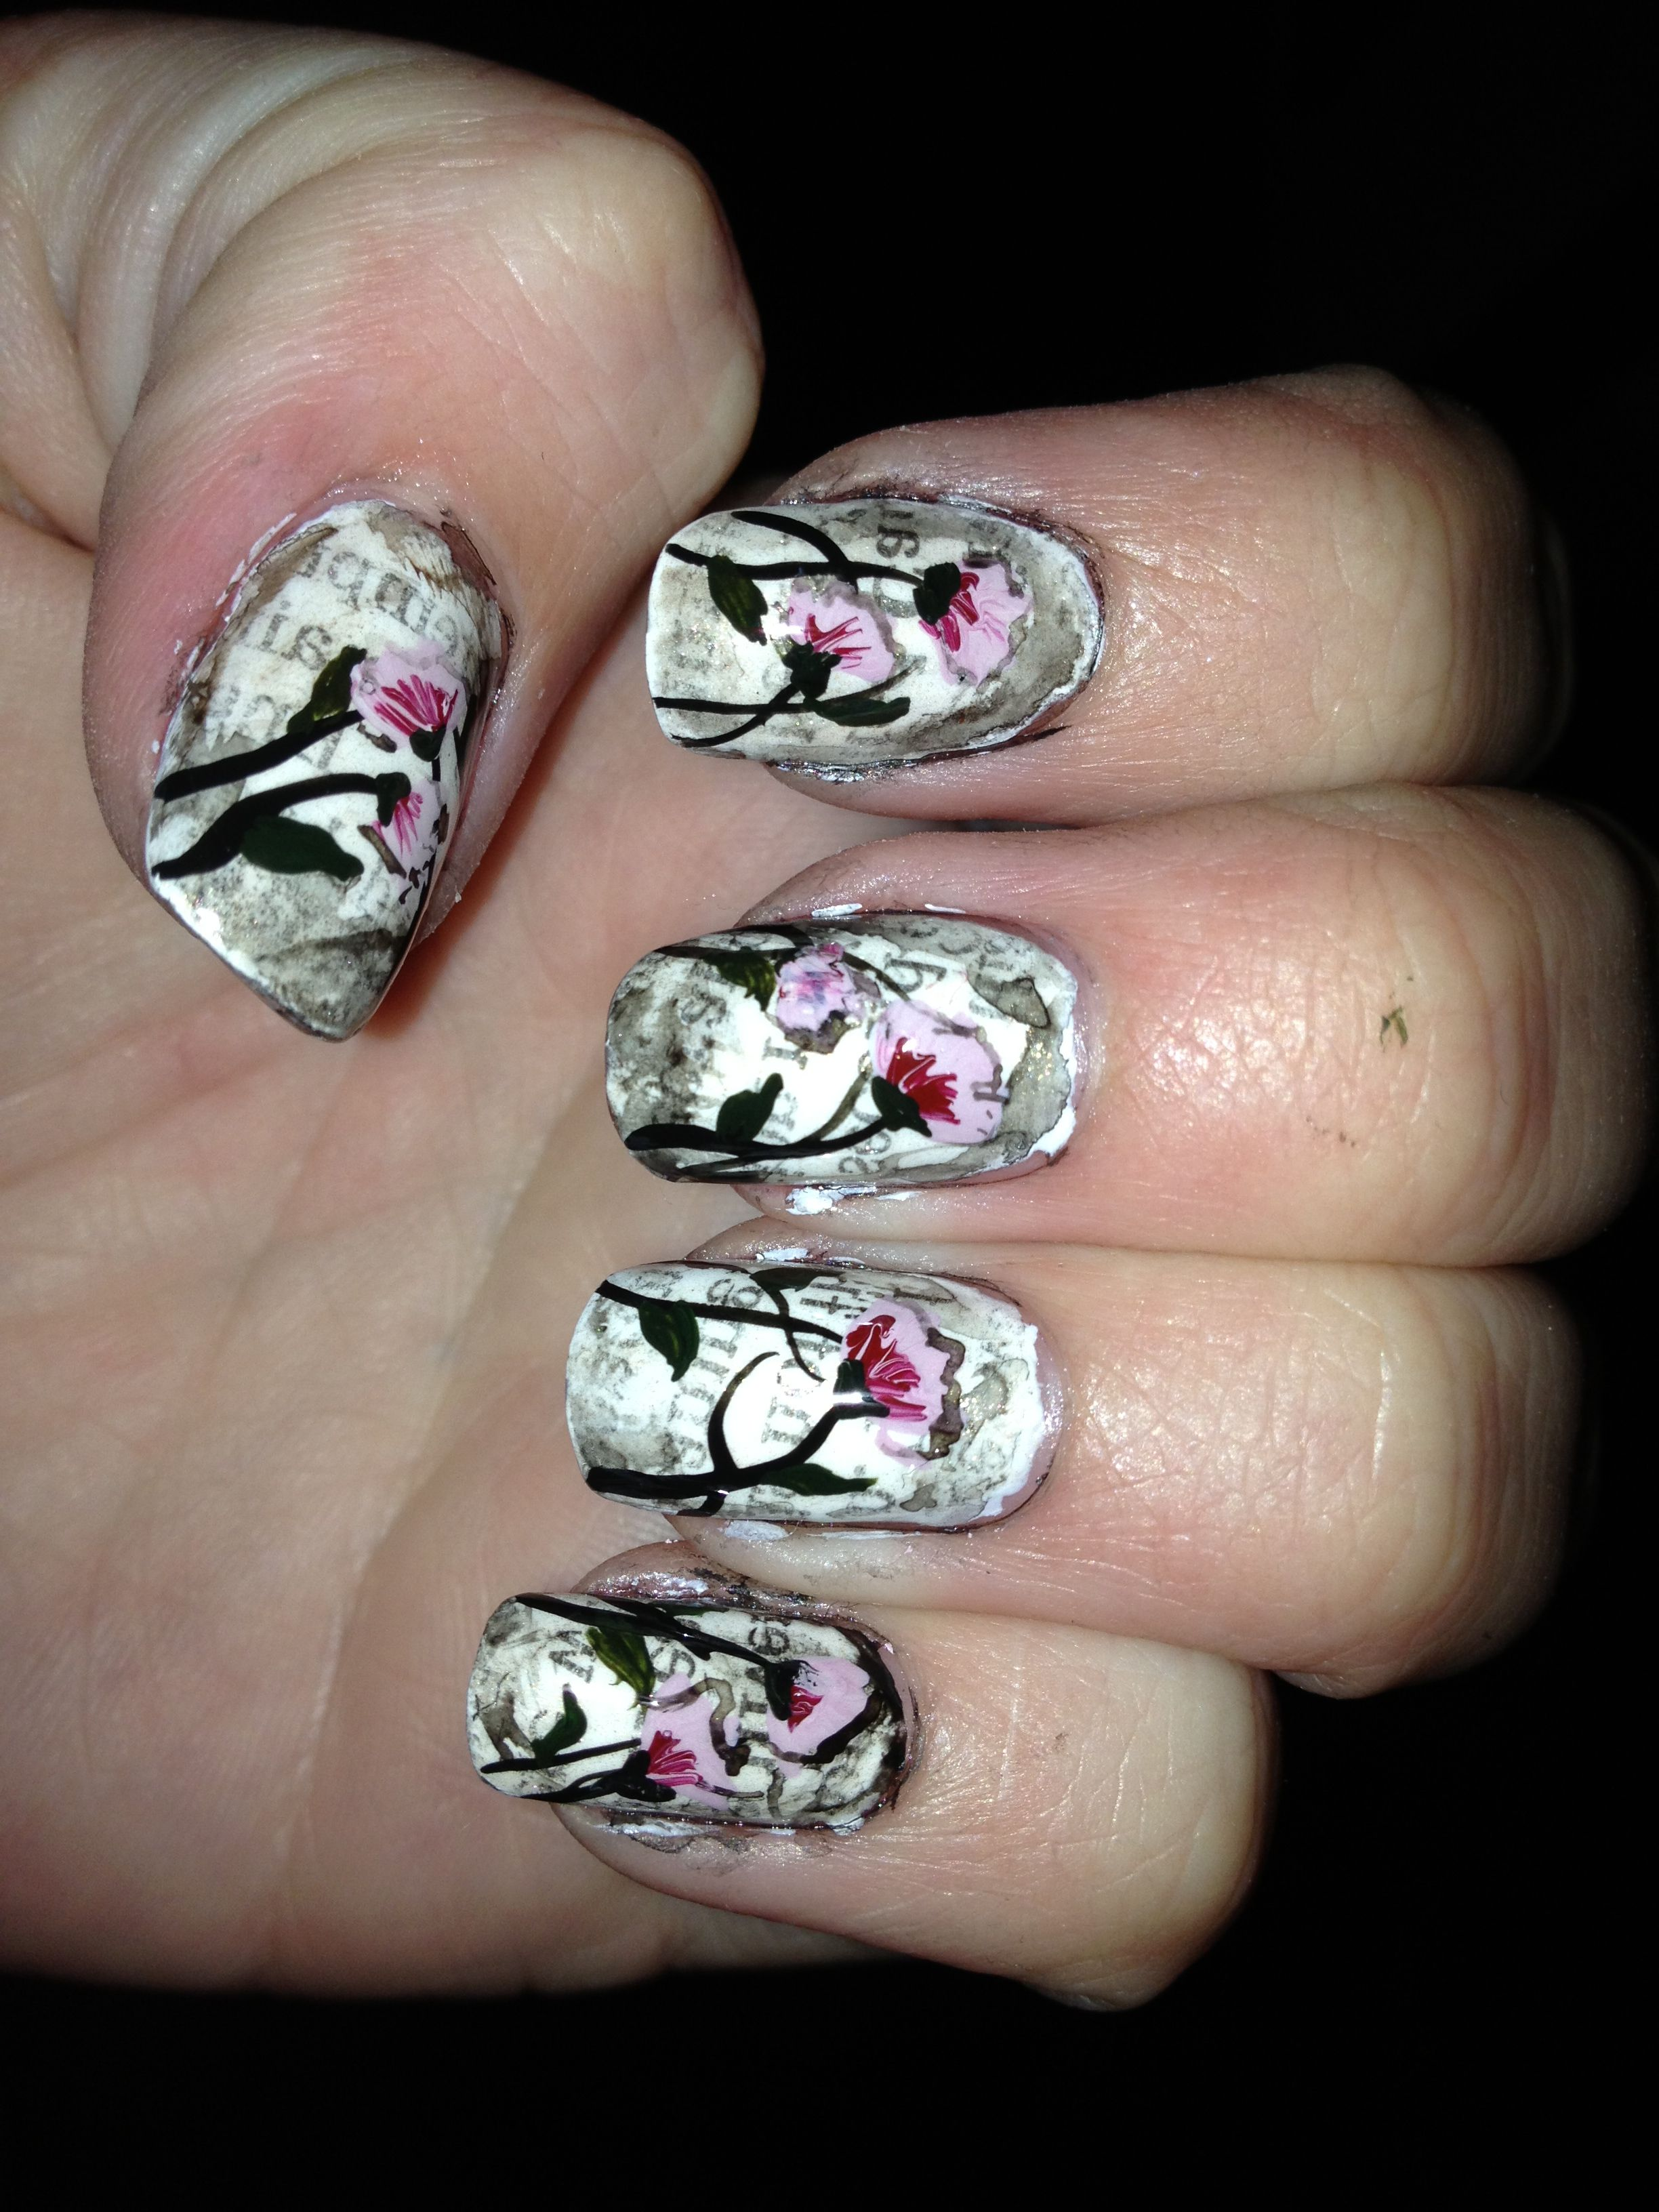 Antique nails (With images) | Nails, Nail art, Antiques